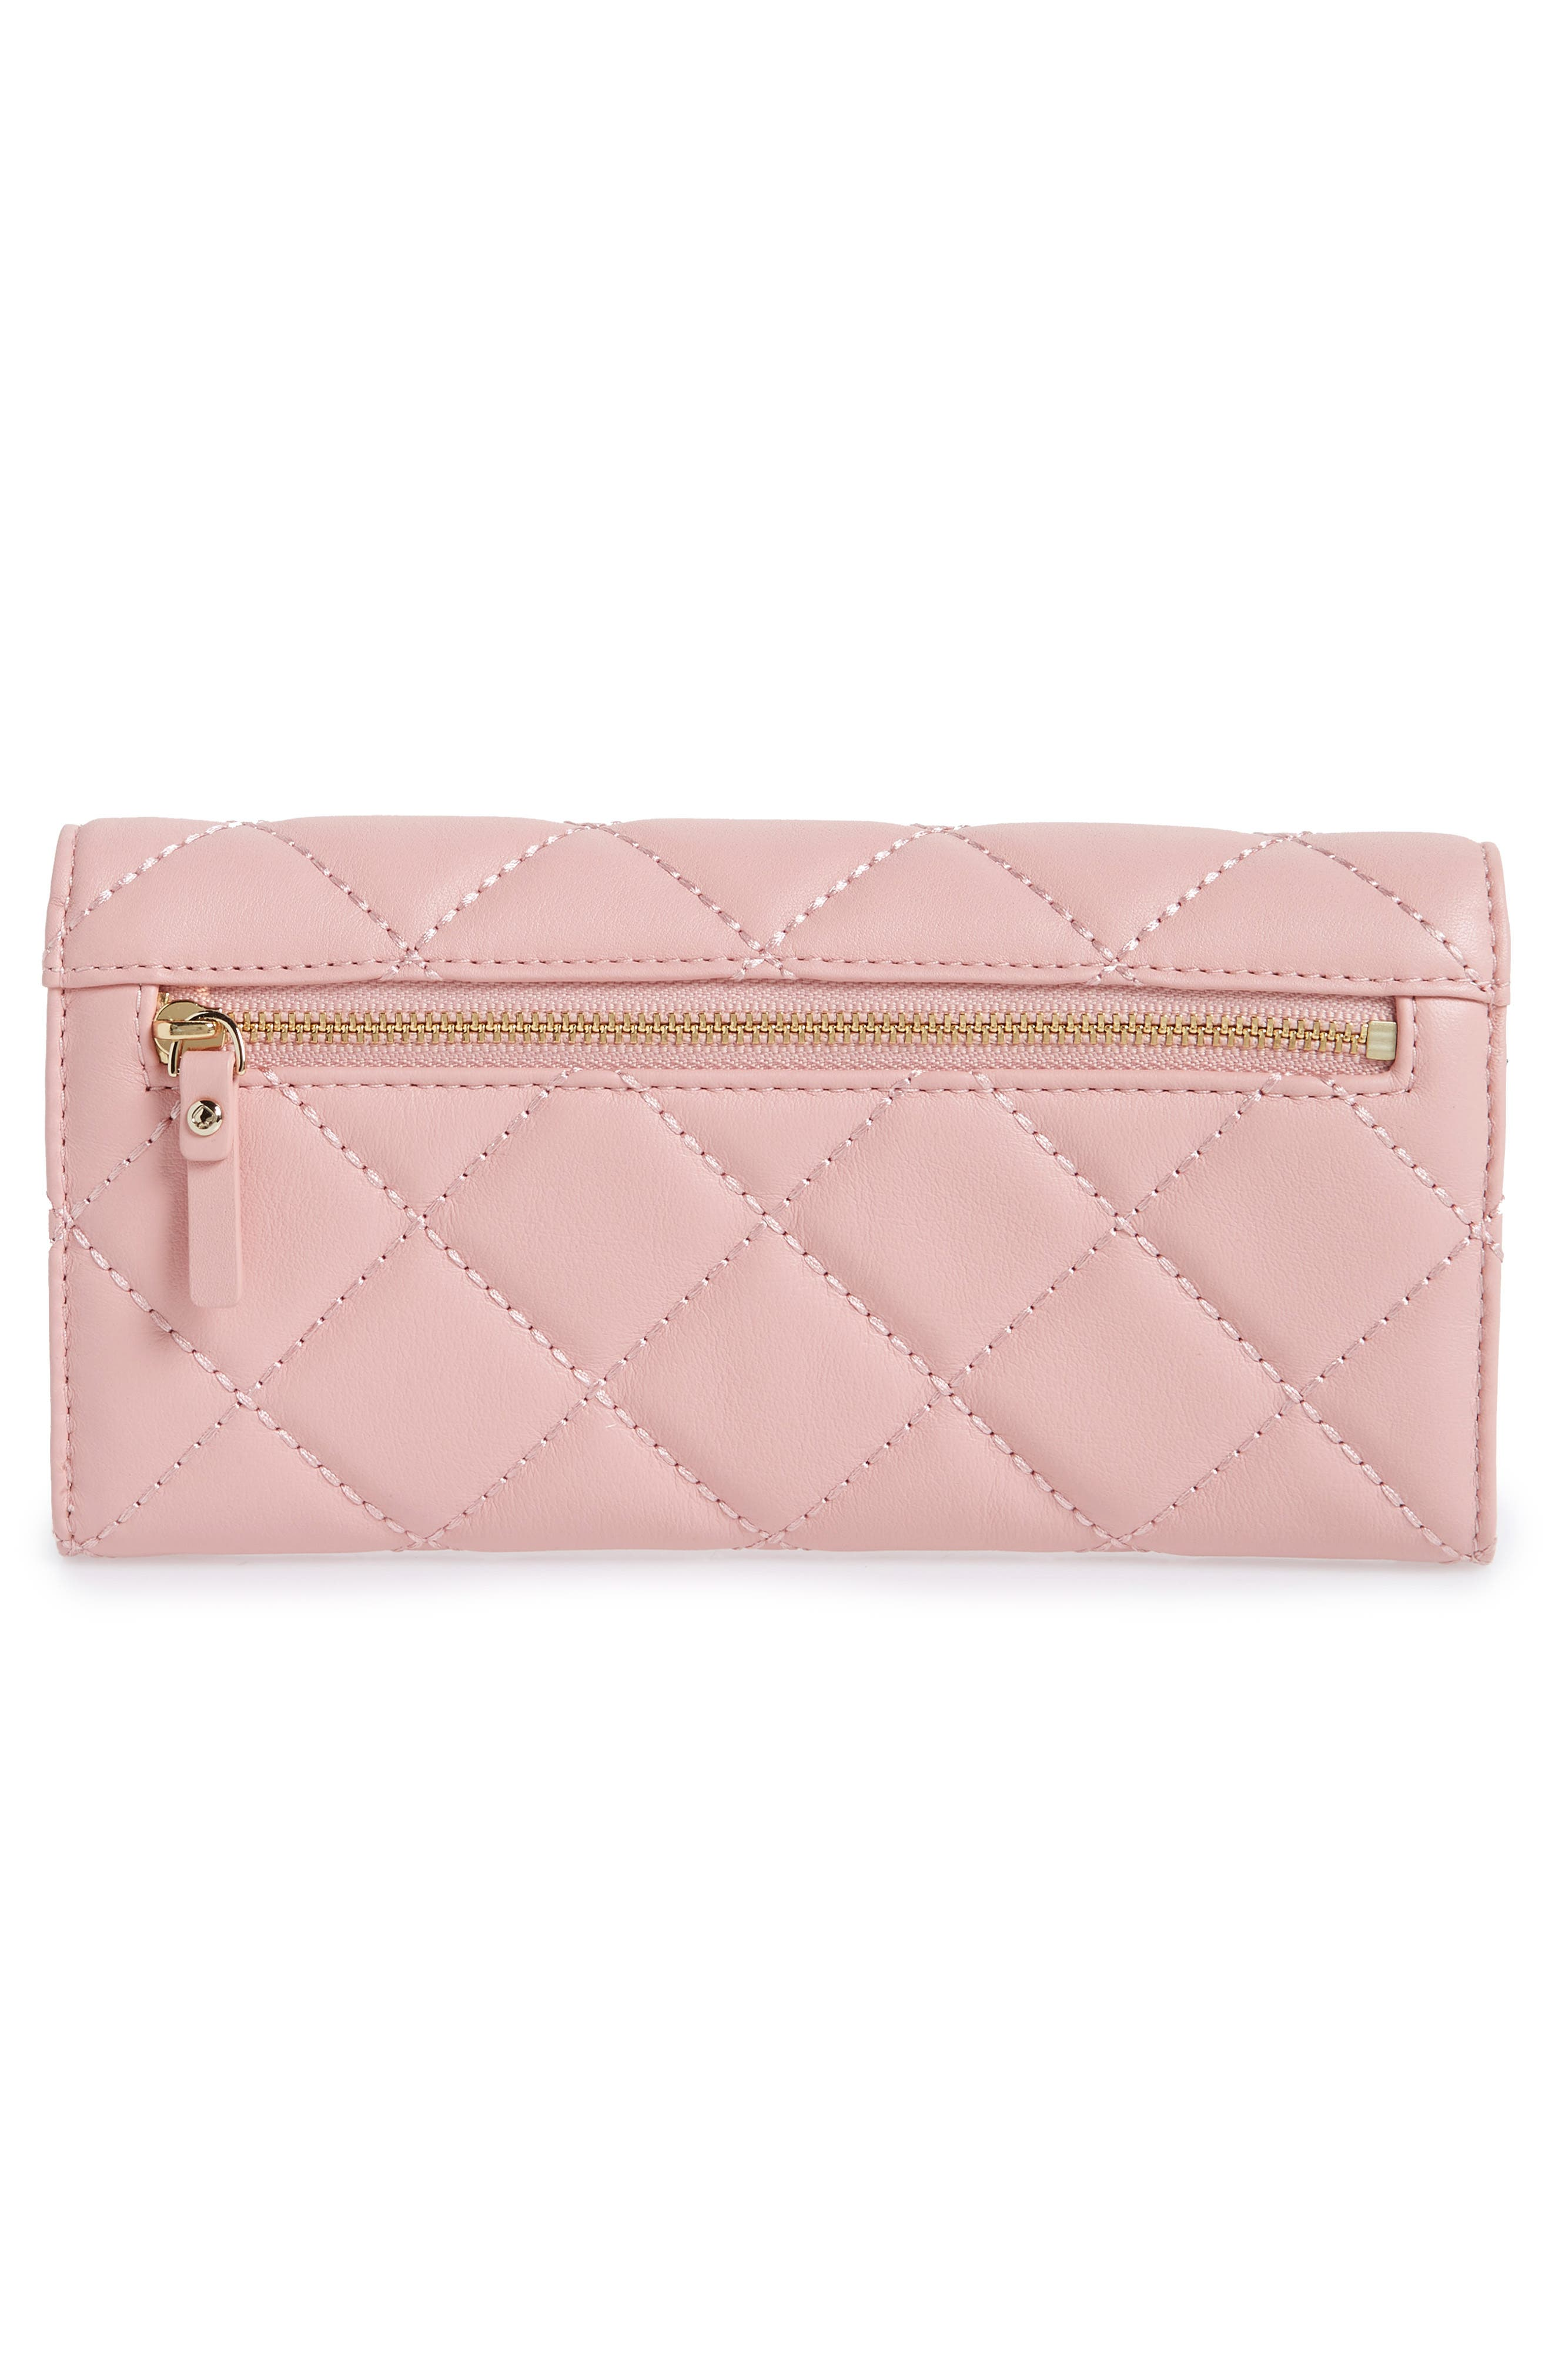 emerson place - kinsley quilted leather wallet,                             Alternate thumbnail 3, color,                             650